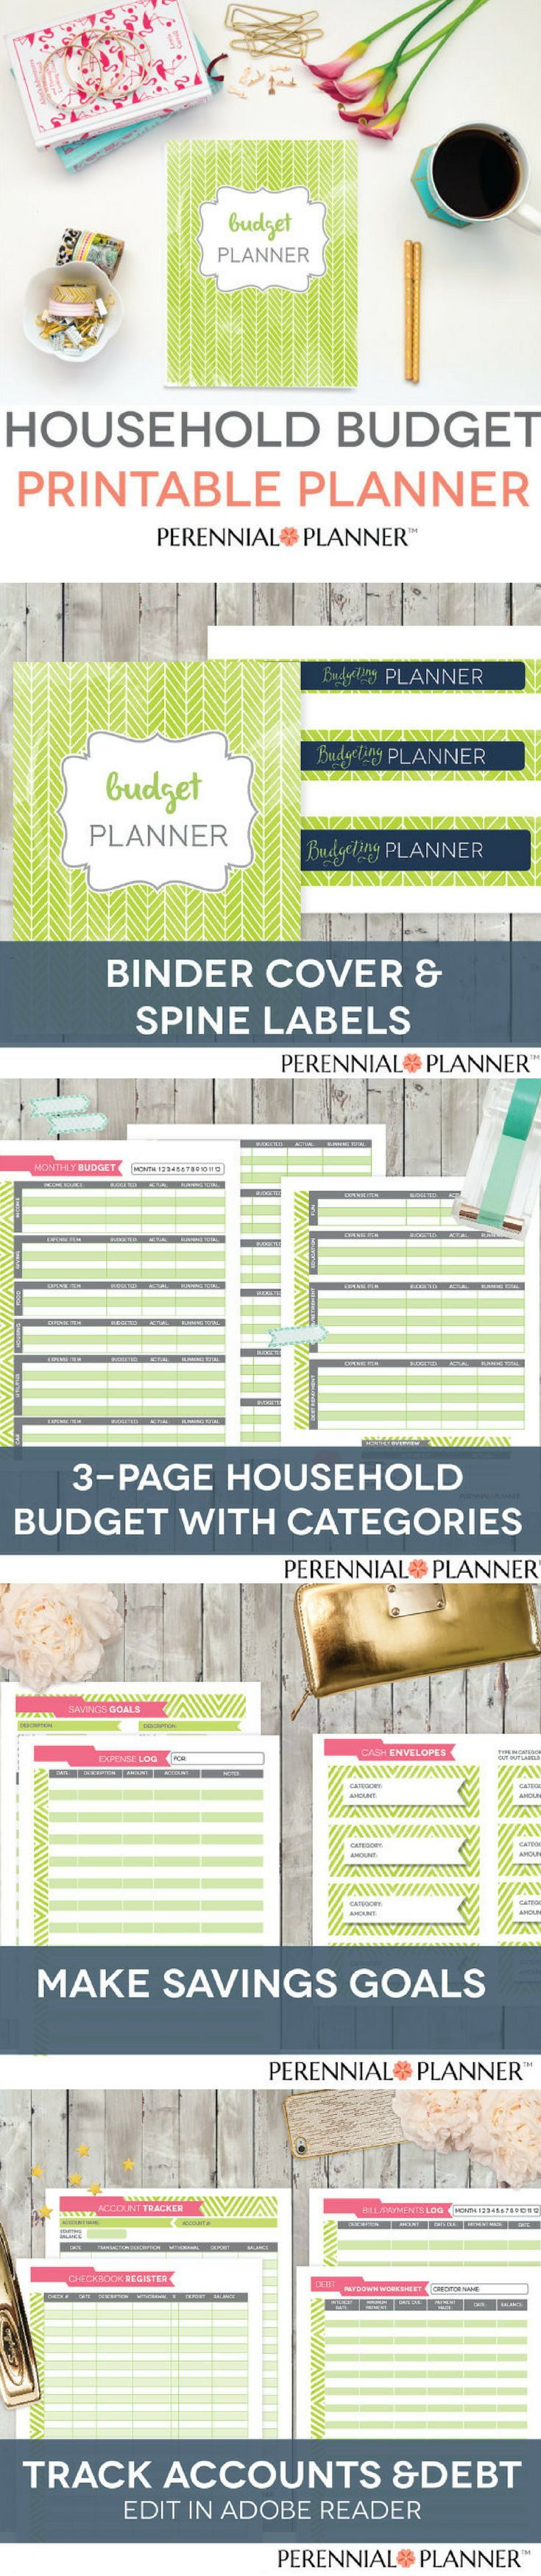 25 best household budget worksheet ideas on pinterest budget budget binder printable monthly household budget form financial planning set family money tracker robcynllc Image collections